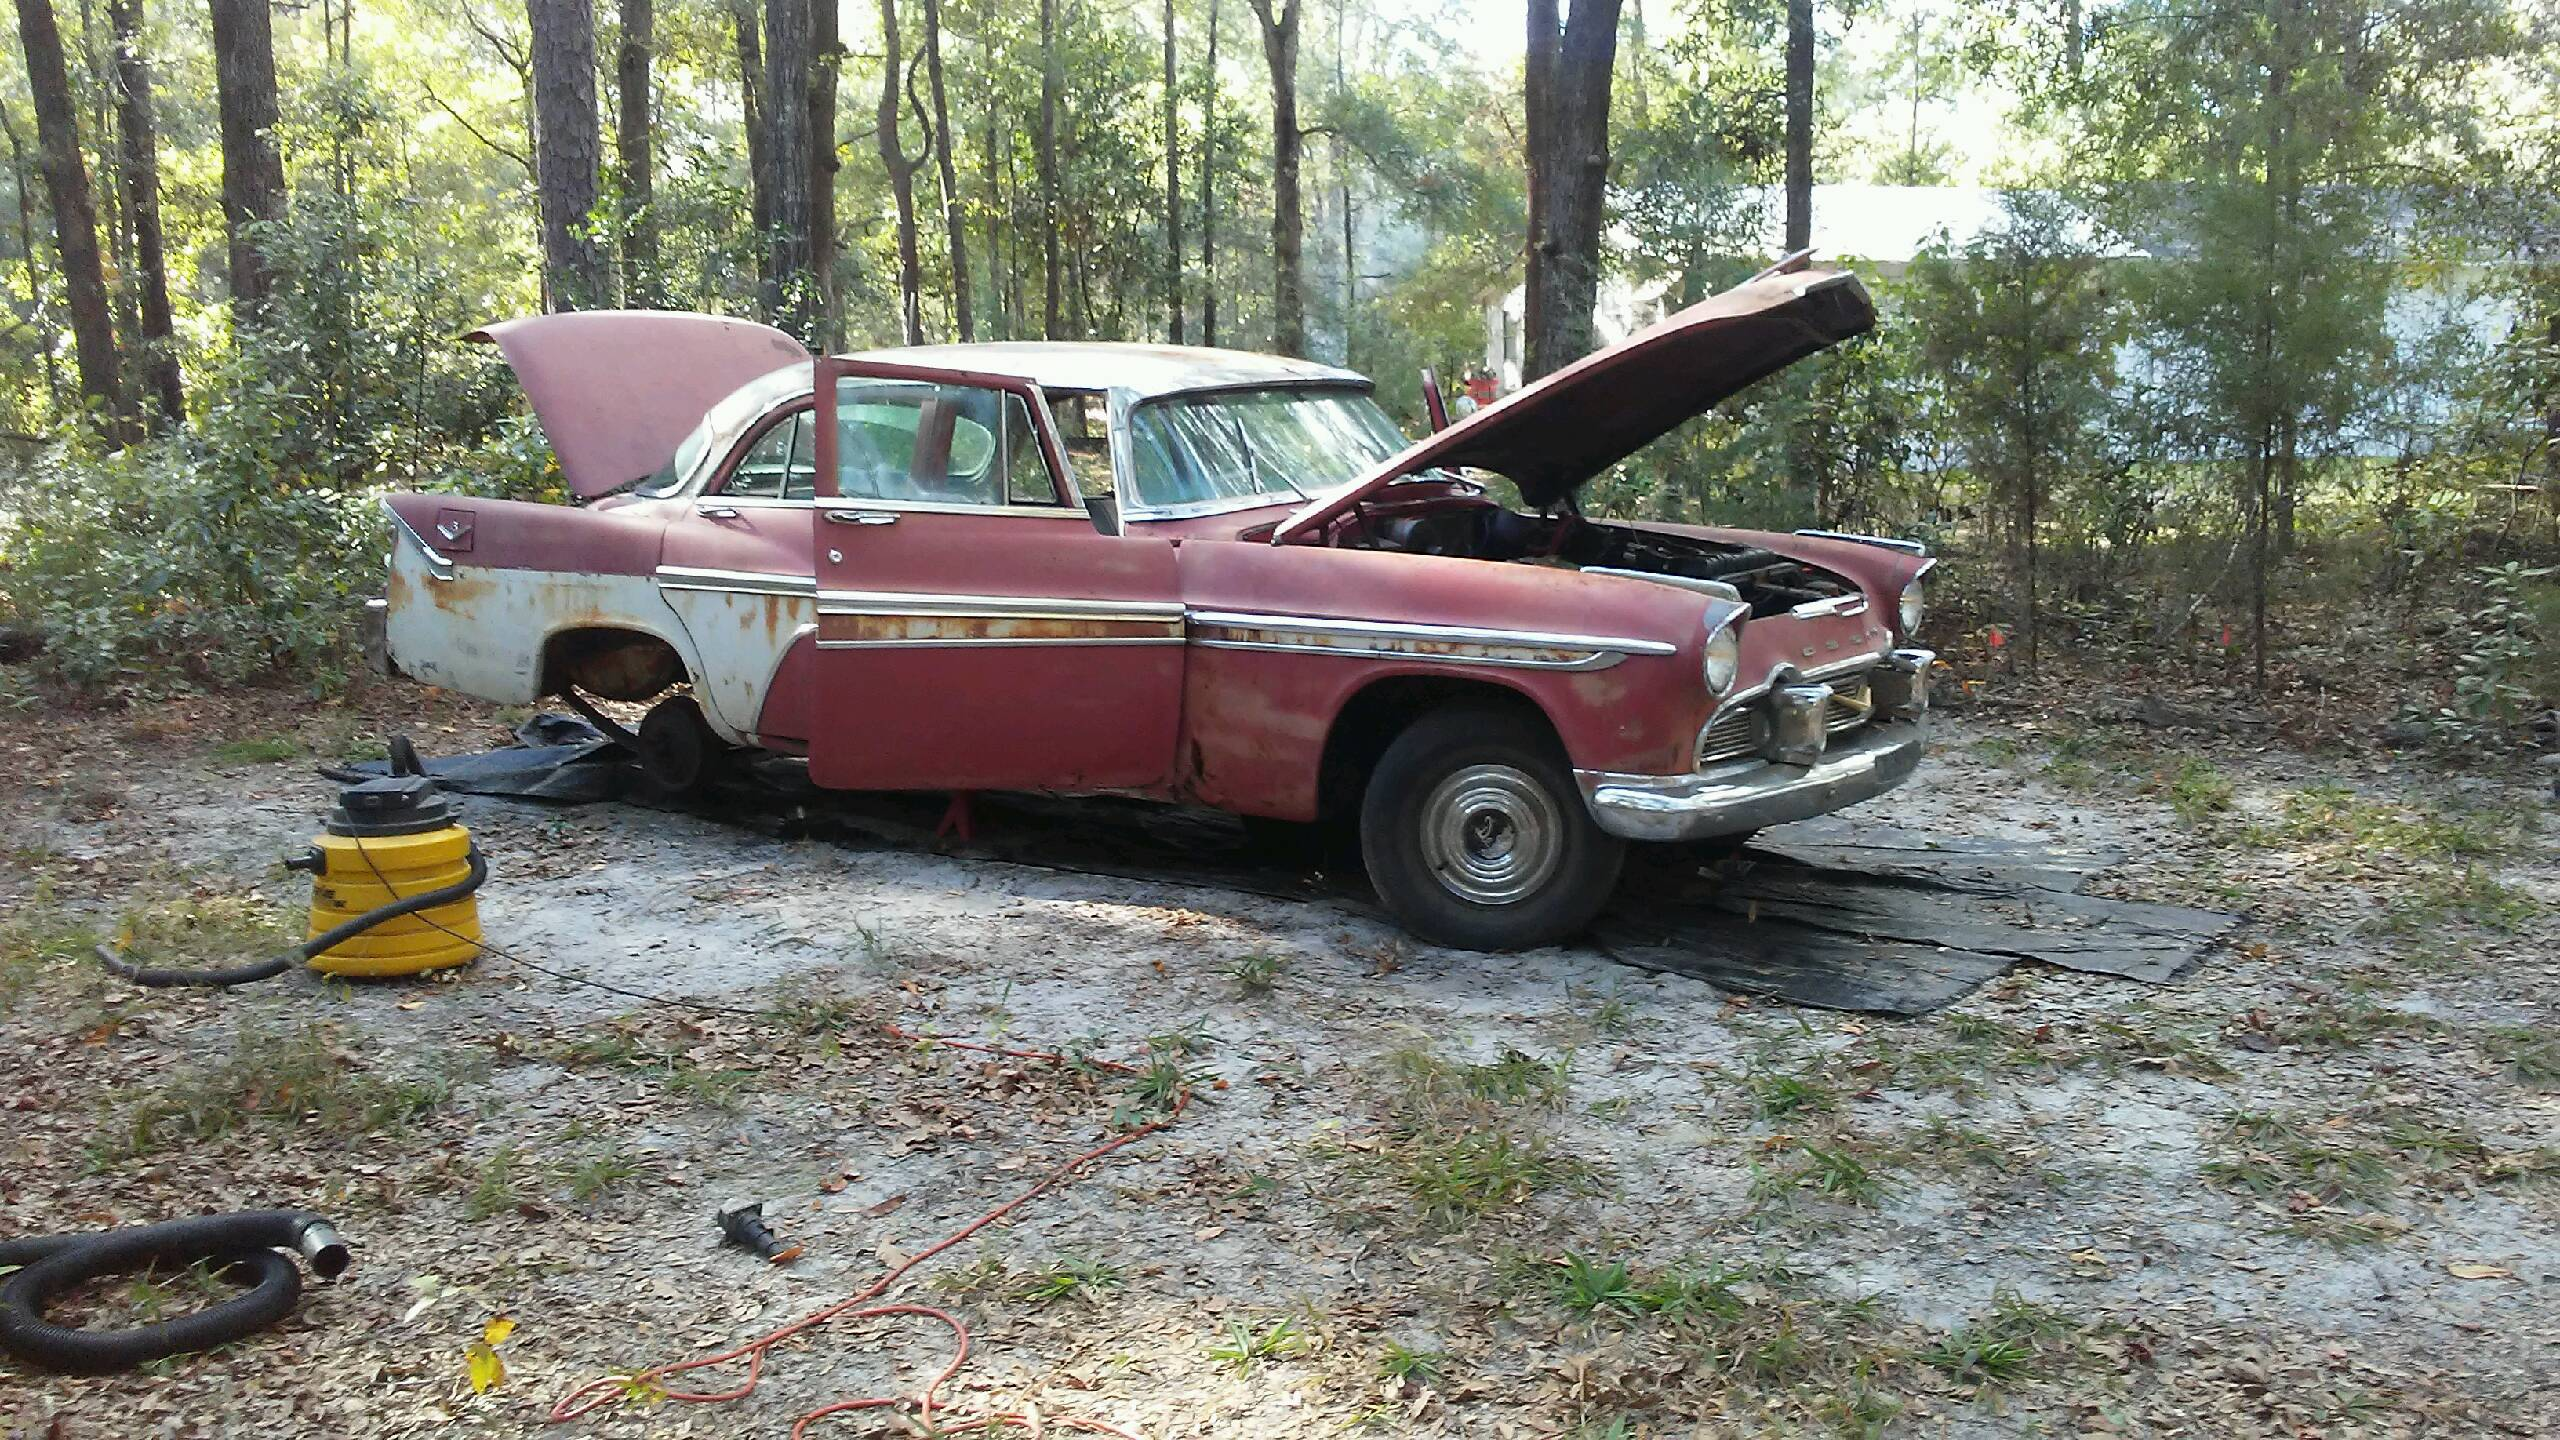 1956 desoto firedome seville 4 door hardtop 1 of 10 - I Have One